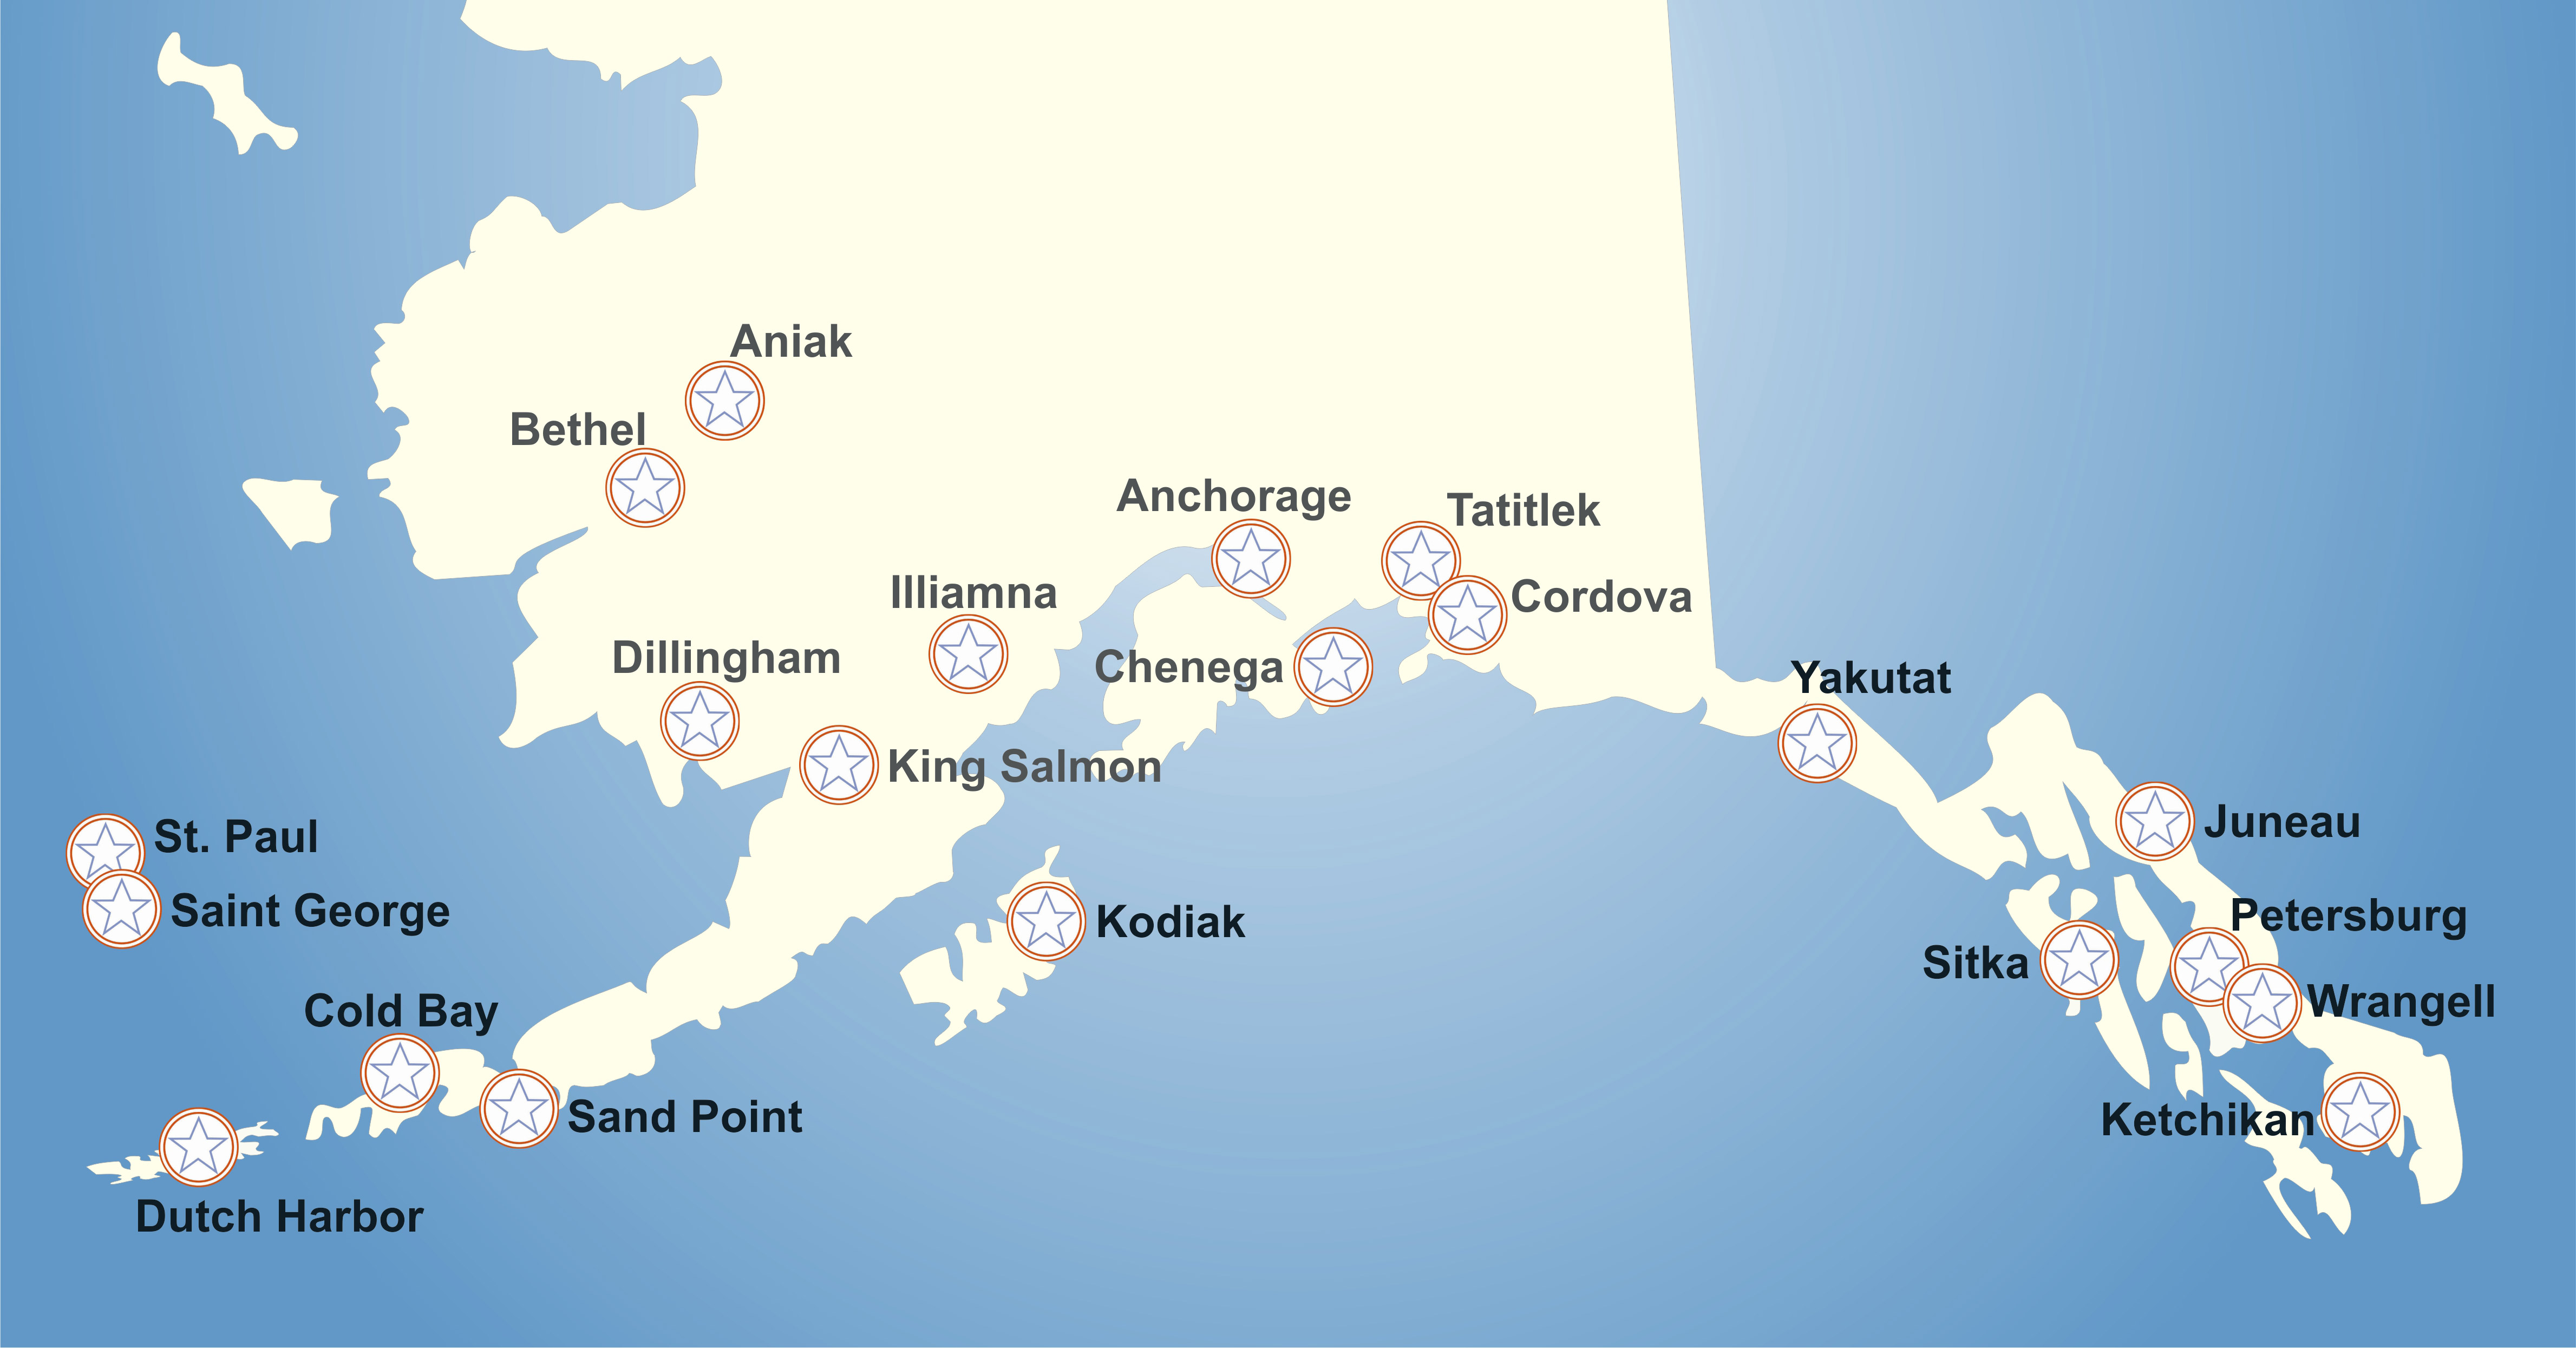 Map - ACE Air Cargo - Premier Air Cargo Service in Alaska Map Of Ak on map alaska bush people, map of co, map of ar, map of alaska, map of ce, map of british columbia, map of arkansas, map of cl, map of u.s. territories, map of patricia, map of western oh, map of wv west virginia, map of pue, map of bb, map of northern me, map of ag, map of ad, map of apo, map of hawaii, map of ca,